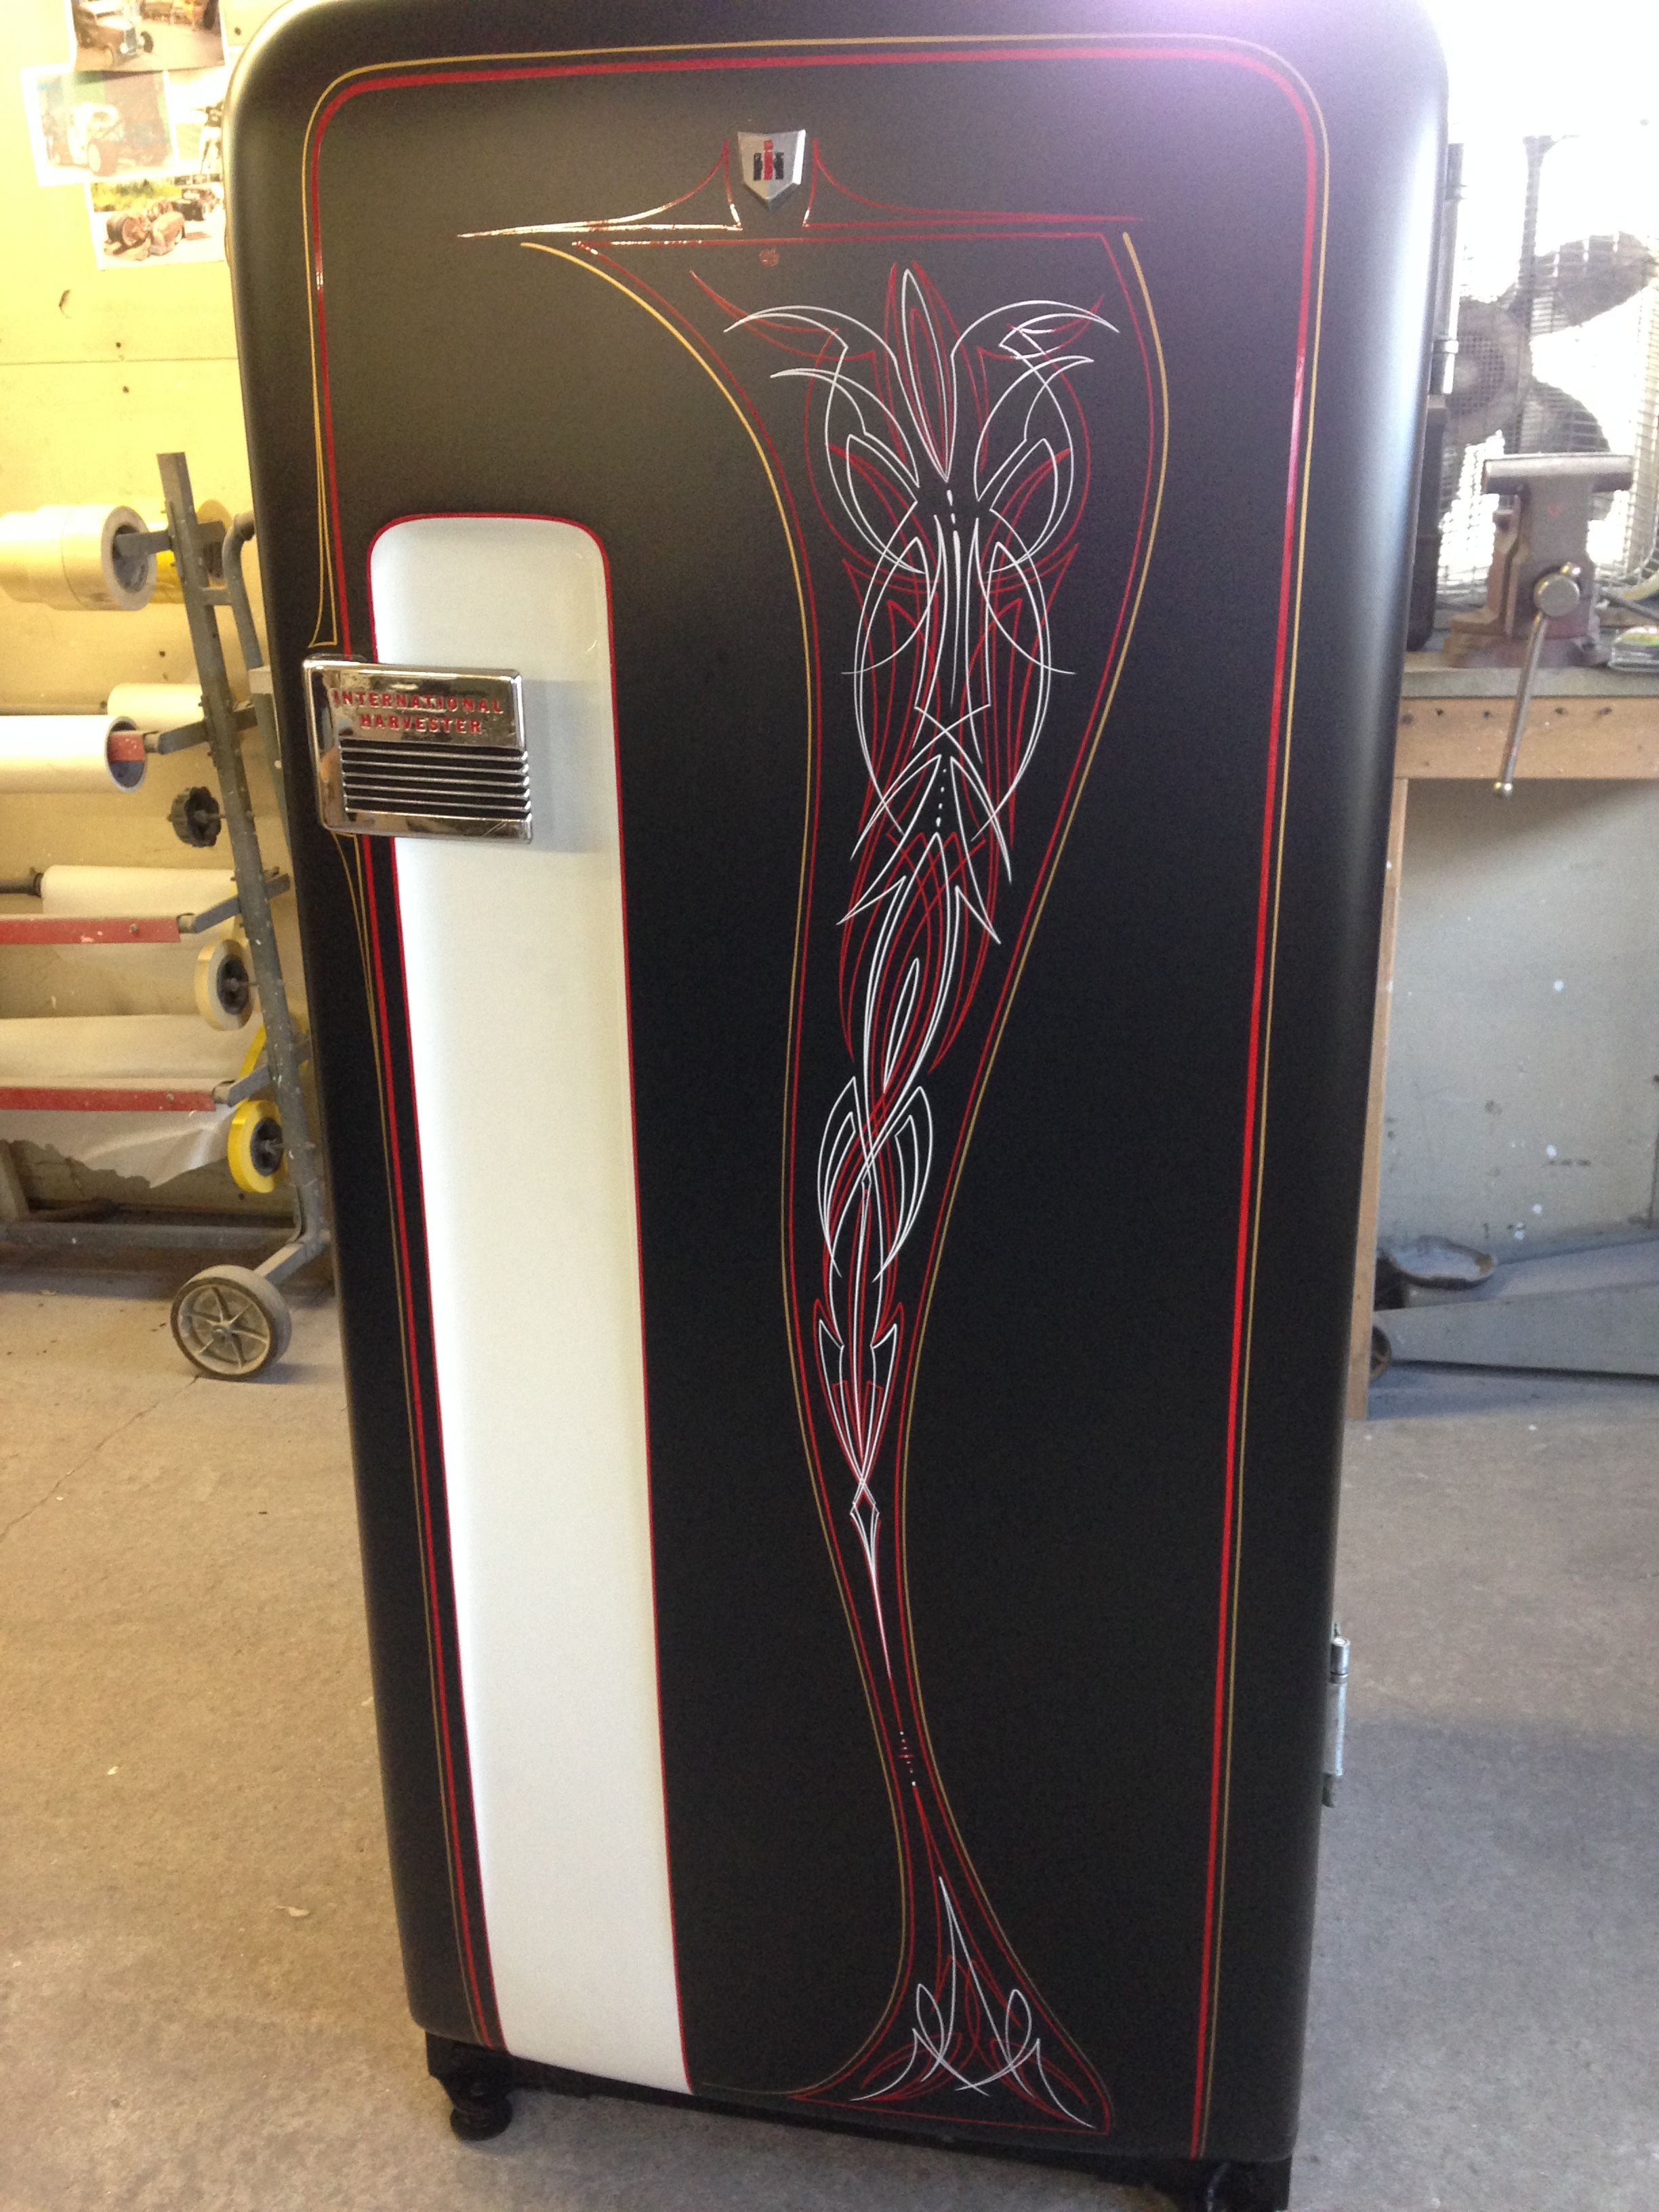 Pin On International Harvester Frig By Todd Fisher Pinstriping